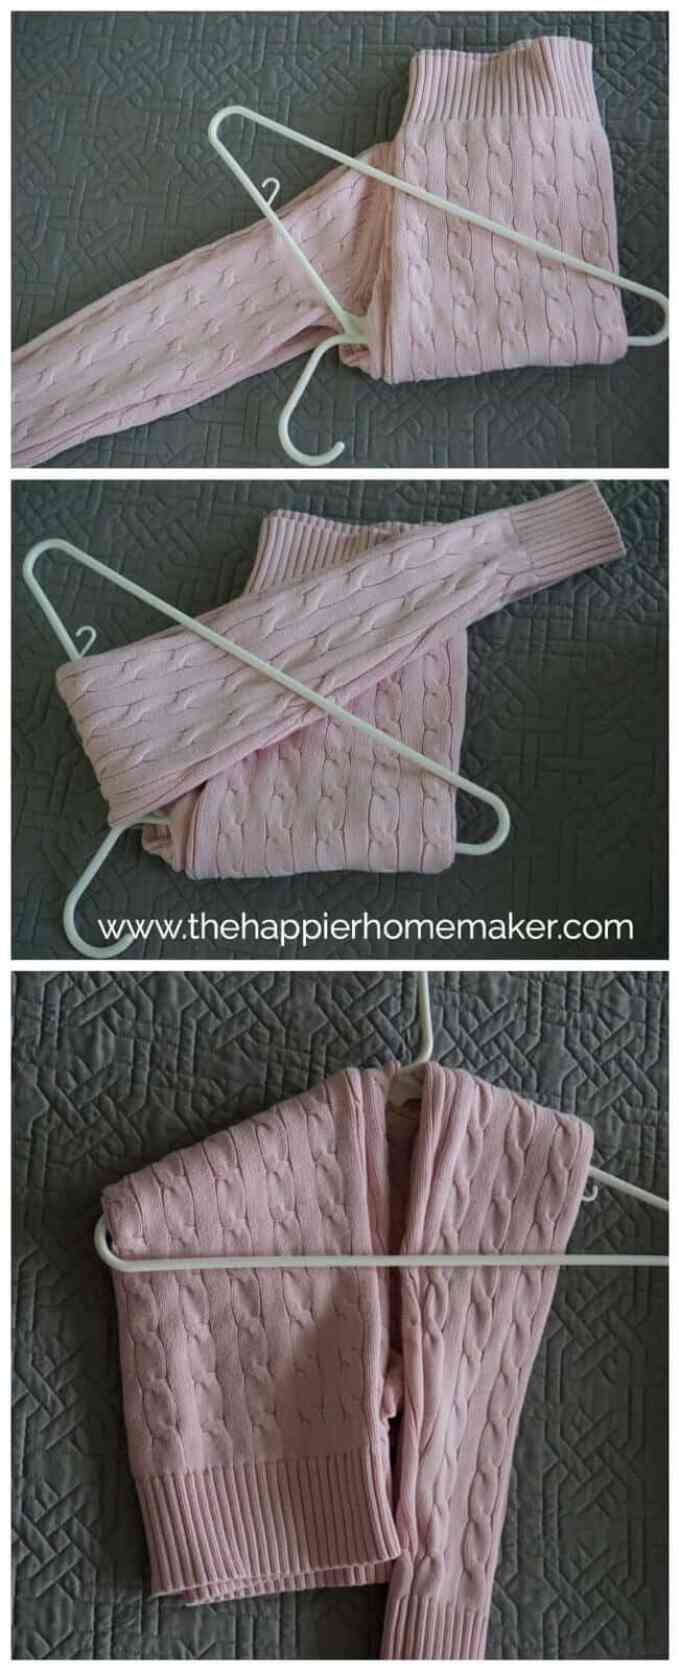 How to Hang a Sweater without stretching out the shoulders via The Happier Homemaker - I love this tip-I like to keep my sweater hanging so my closet is more organized and I can see my options when picking out clothes! - Closet Organization Ideas and Space Saving Hacks